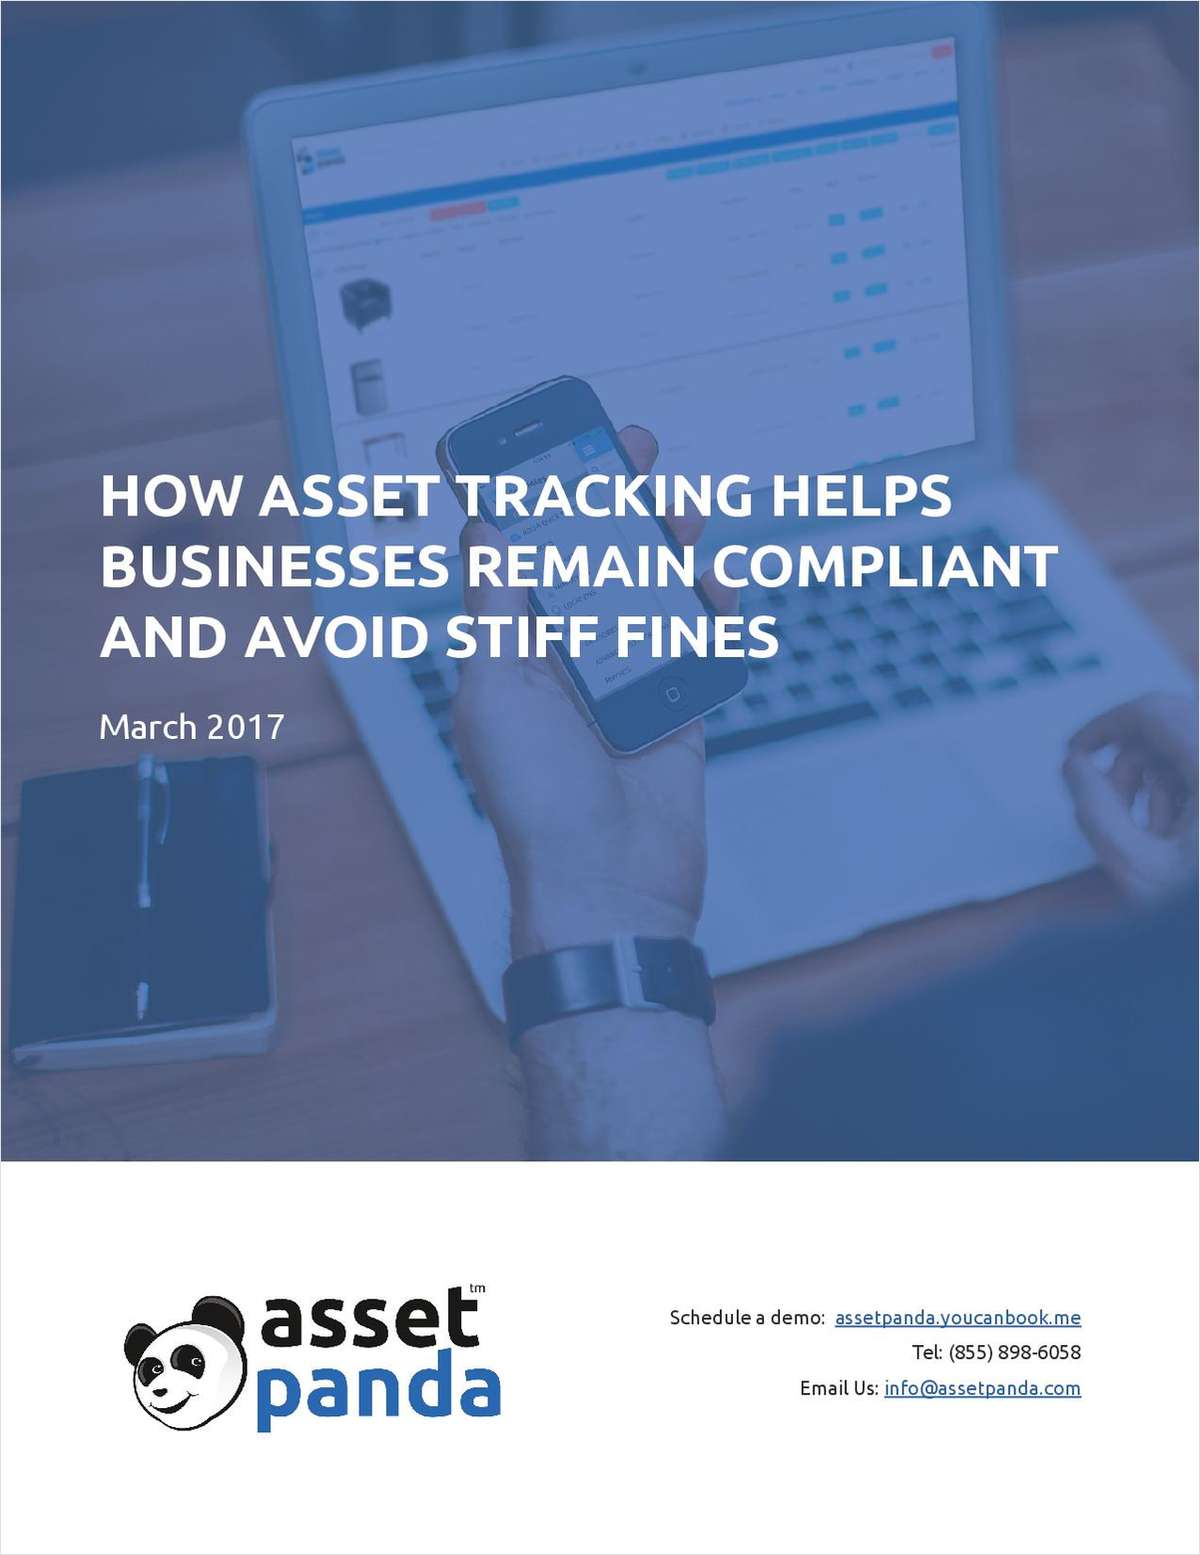 How Asset Tracking Helps Businesses Remain Compliant and Avoid Stiff Fines